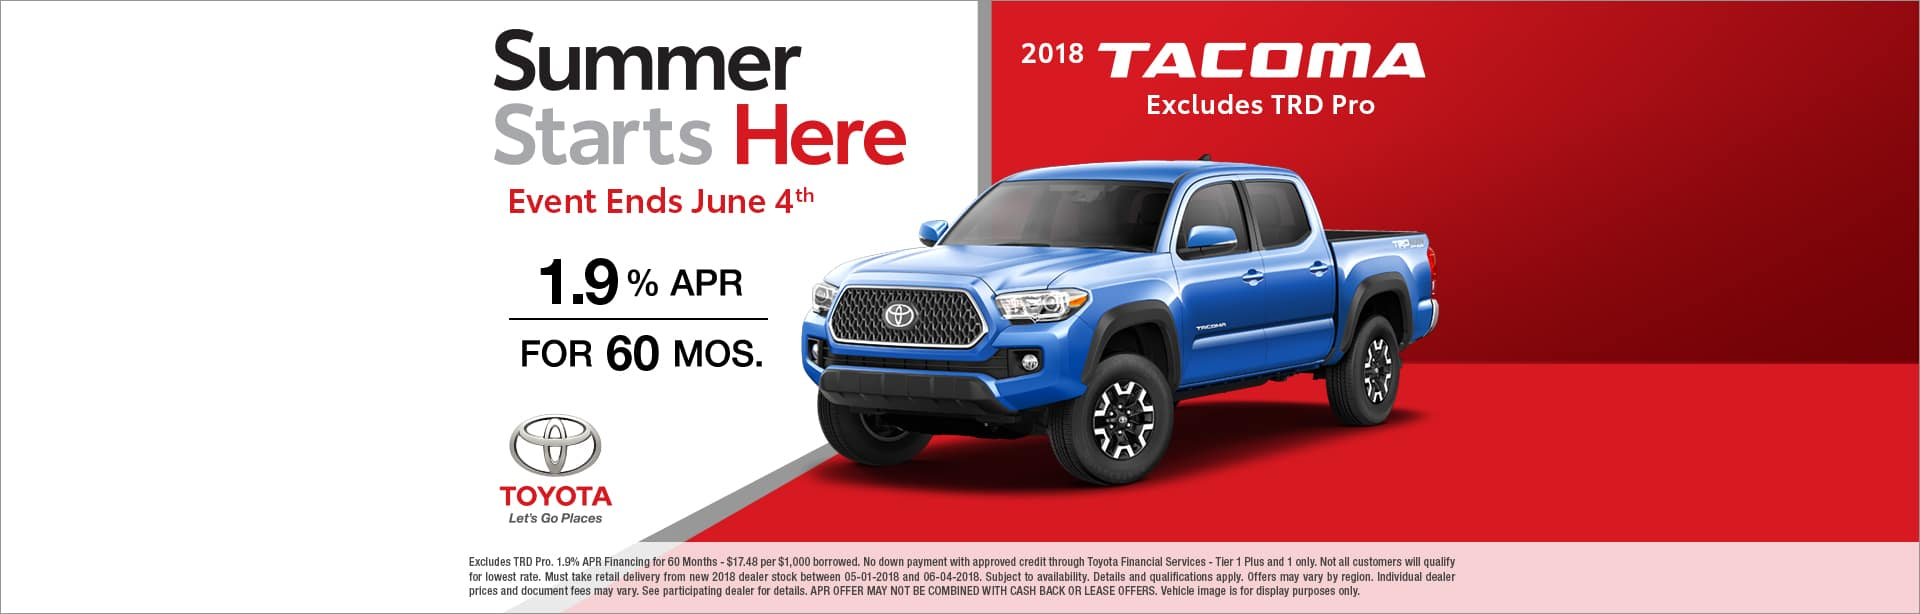 Tacoma Finance Special Cain Toyota North Canton Ohio